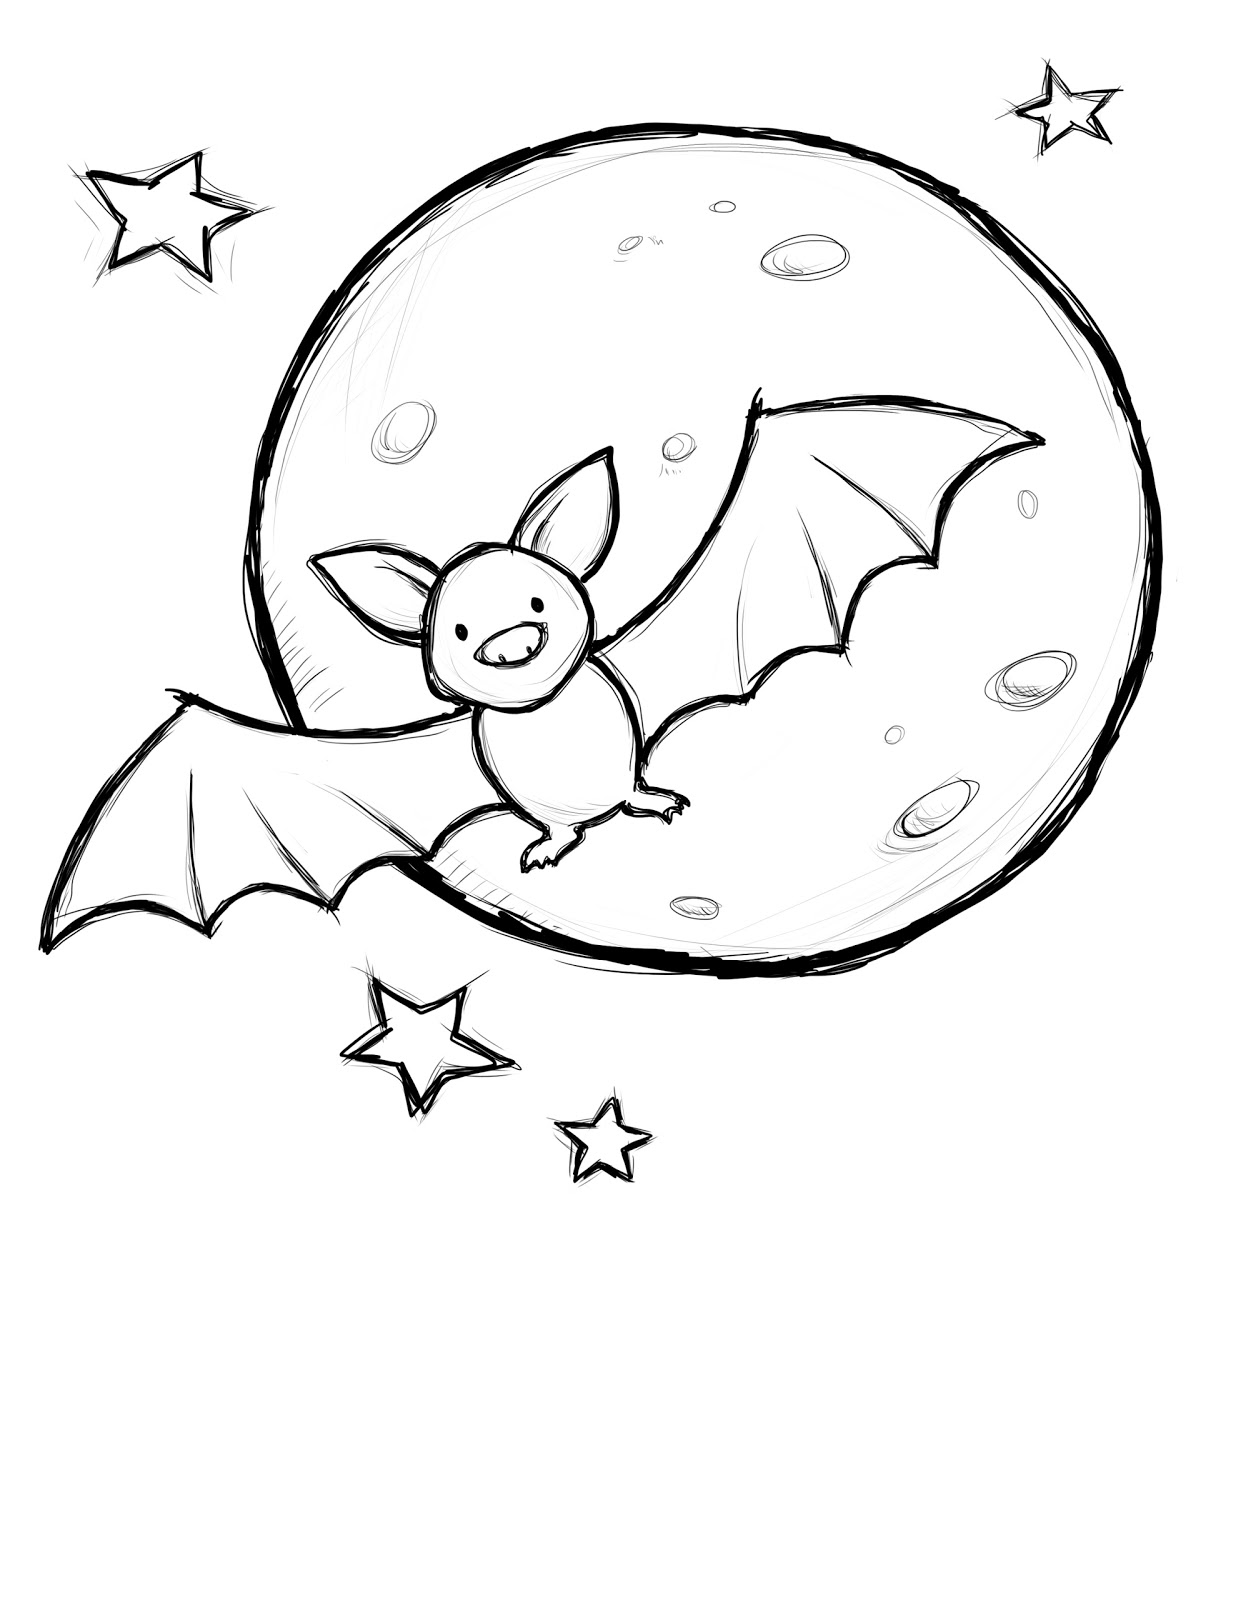 holloween moon coloring pages - photo#2